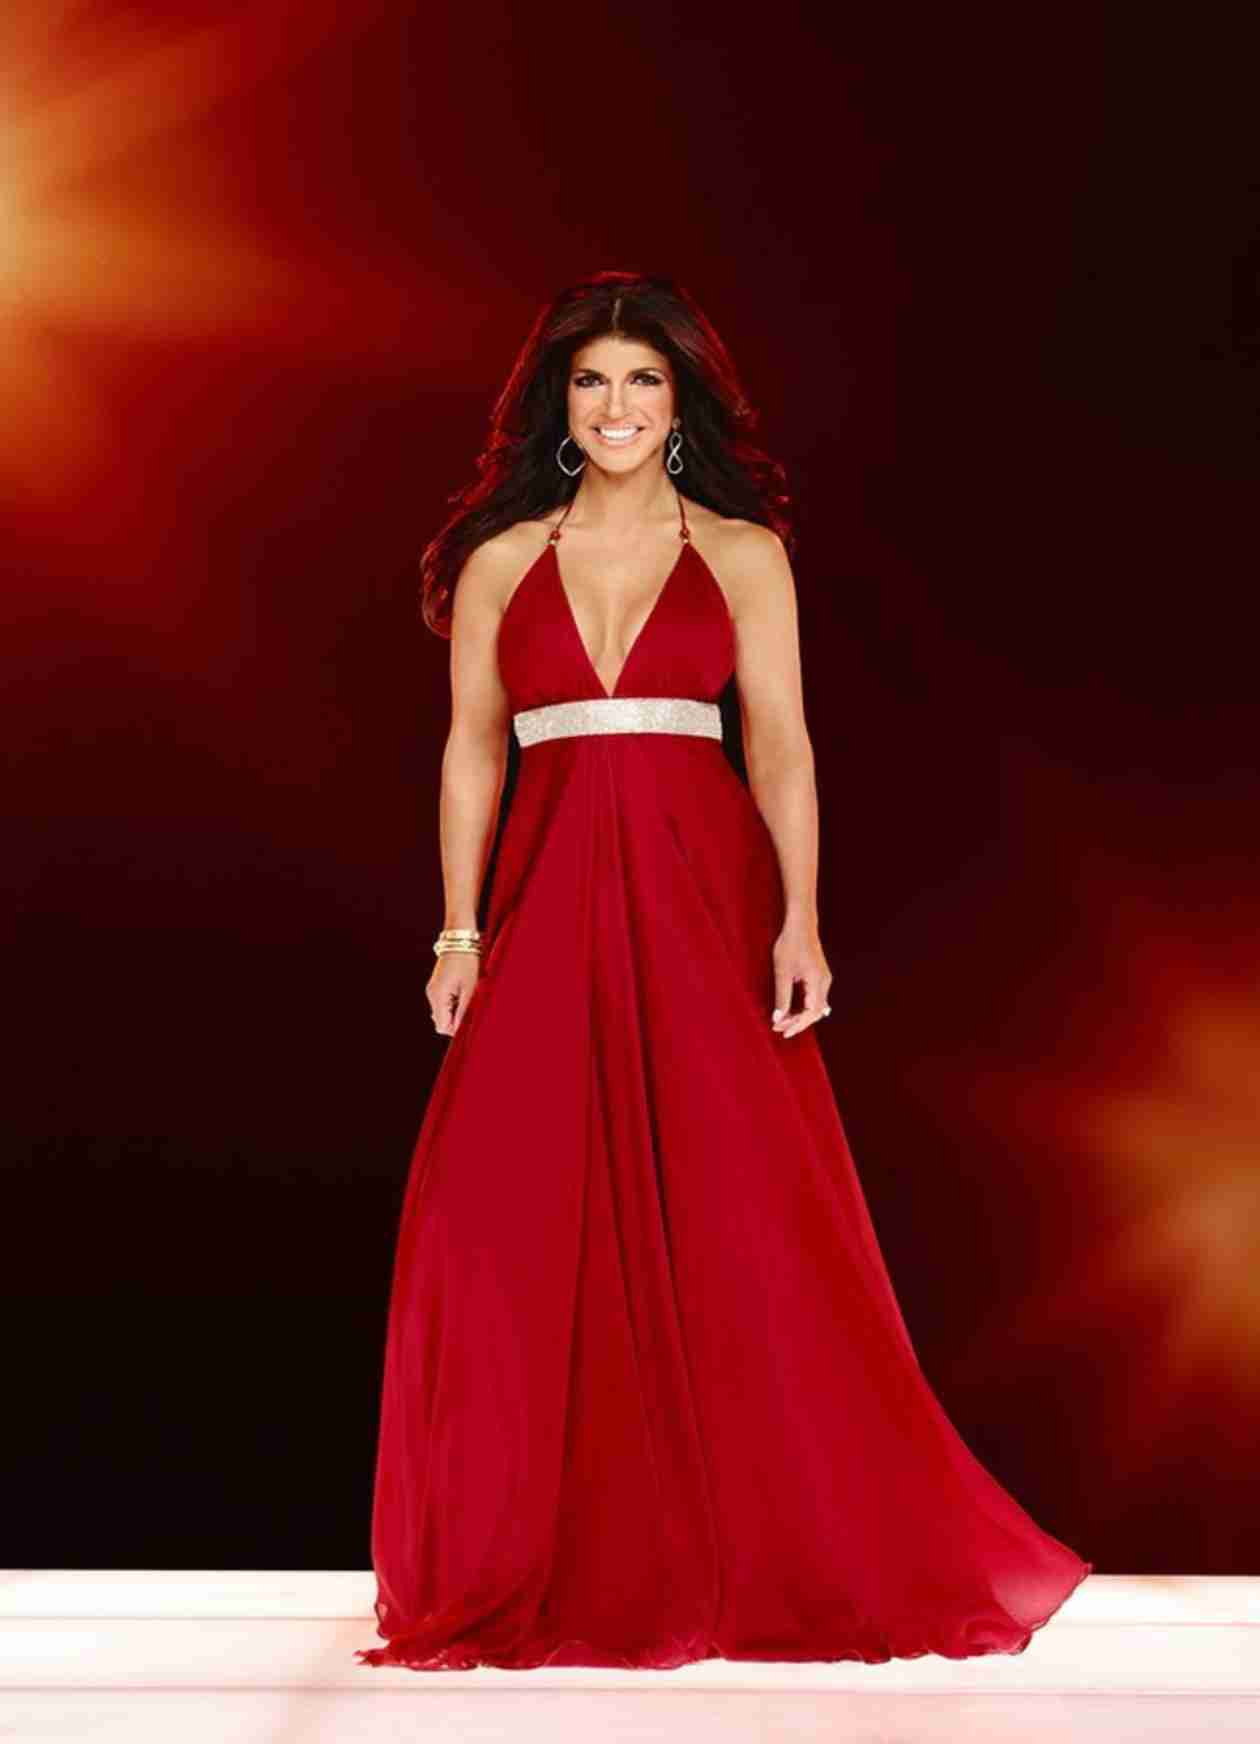 Is Teresa Giudice Feuding With Bravo? — Report